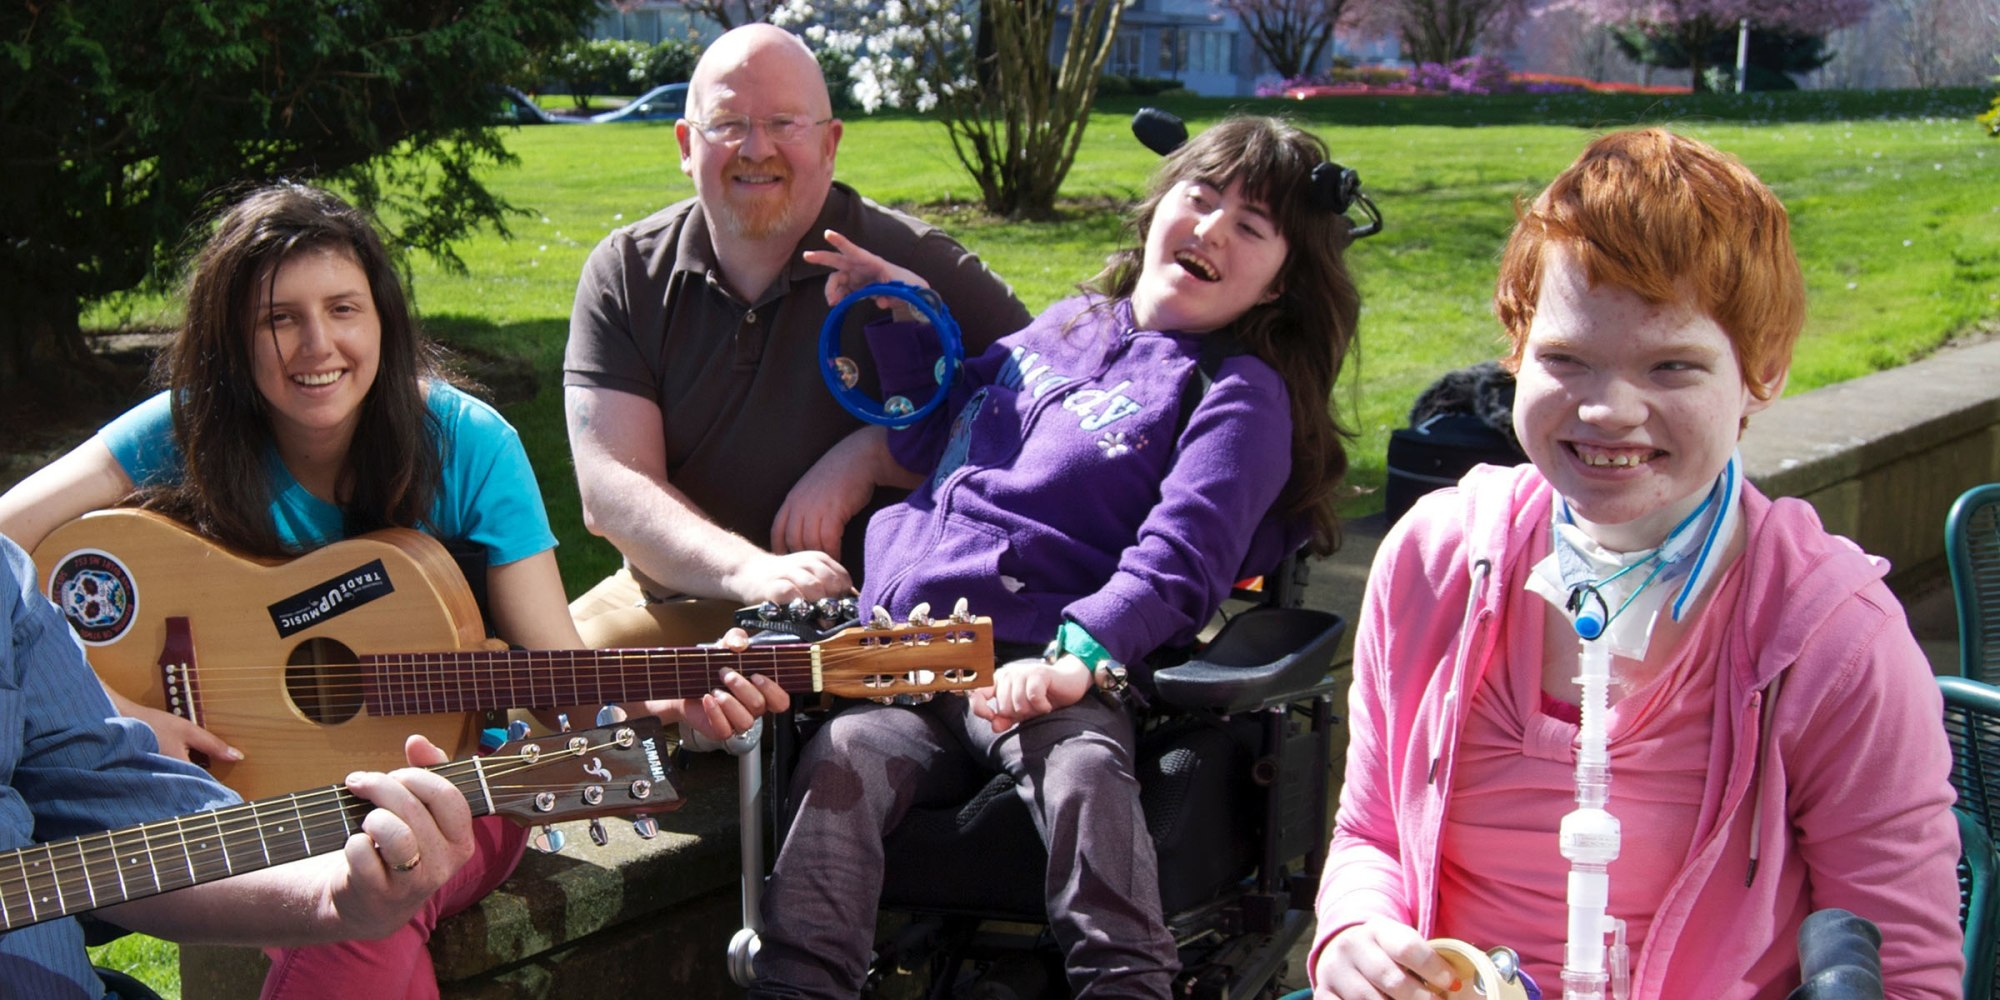 Stephanie McDonald plays the guitar for Brett Bigham and some of his previous students, including Joann Guenther and Molly Fowler.Mark Skolnik courtesy of Multnomah Education Service District